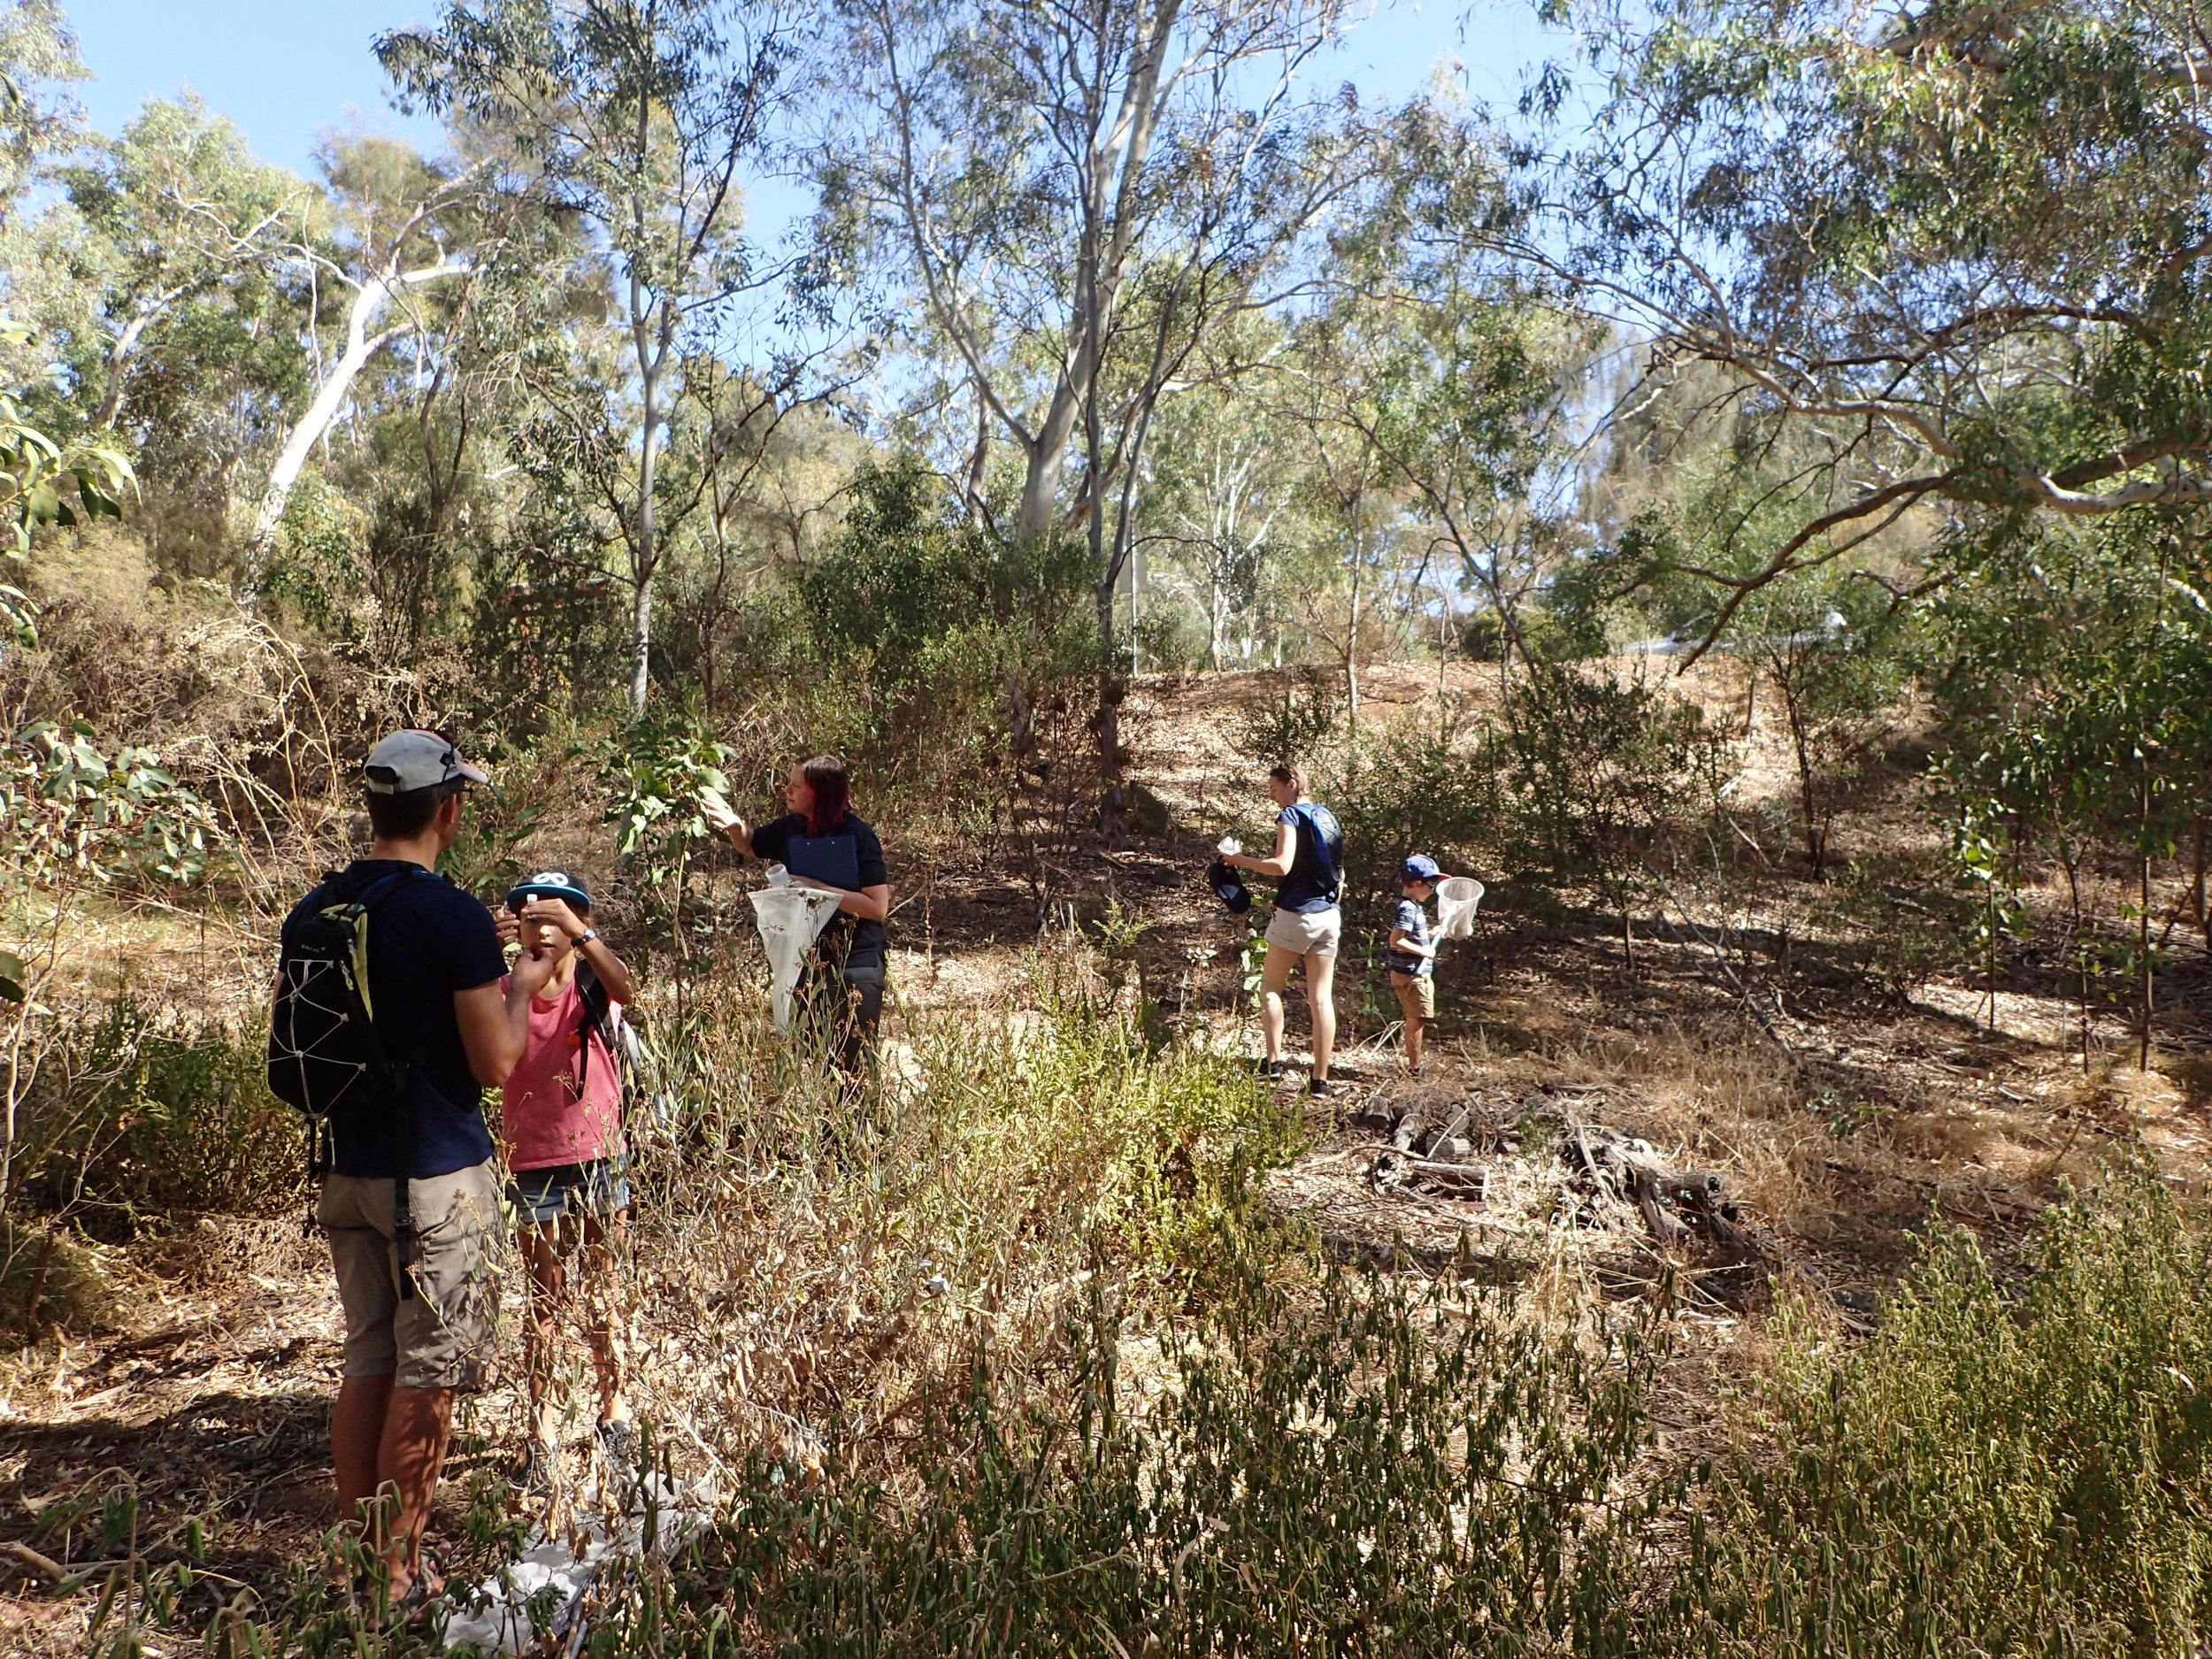 Morialta MiniBlitz - In April 2018, Friends of Morialta and Black Hill hosted a number of local scientists and naturalists for half a day in one of their regular 'mini bio-blitz' activities. However, in addition to the biological surveys, for the first time, they also hosted a number of activities focused on nature connection. These included sessions for Forest Bathing and Nature Art/Mandala Making.